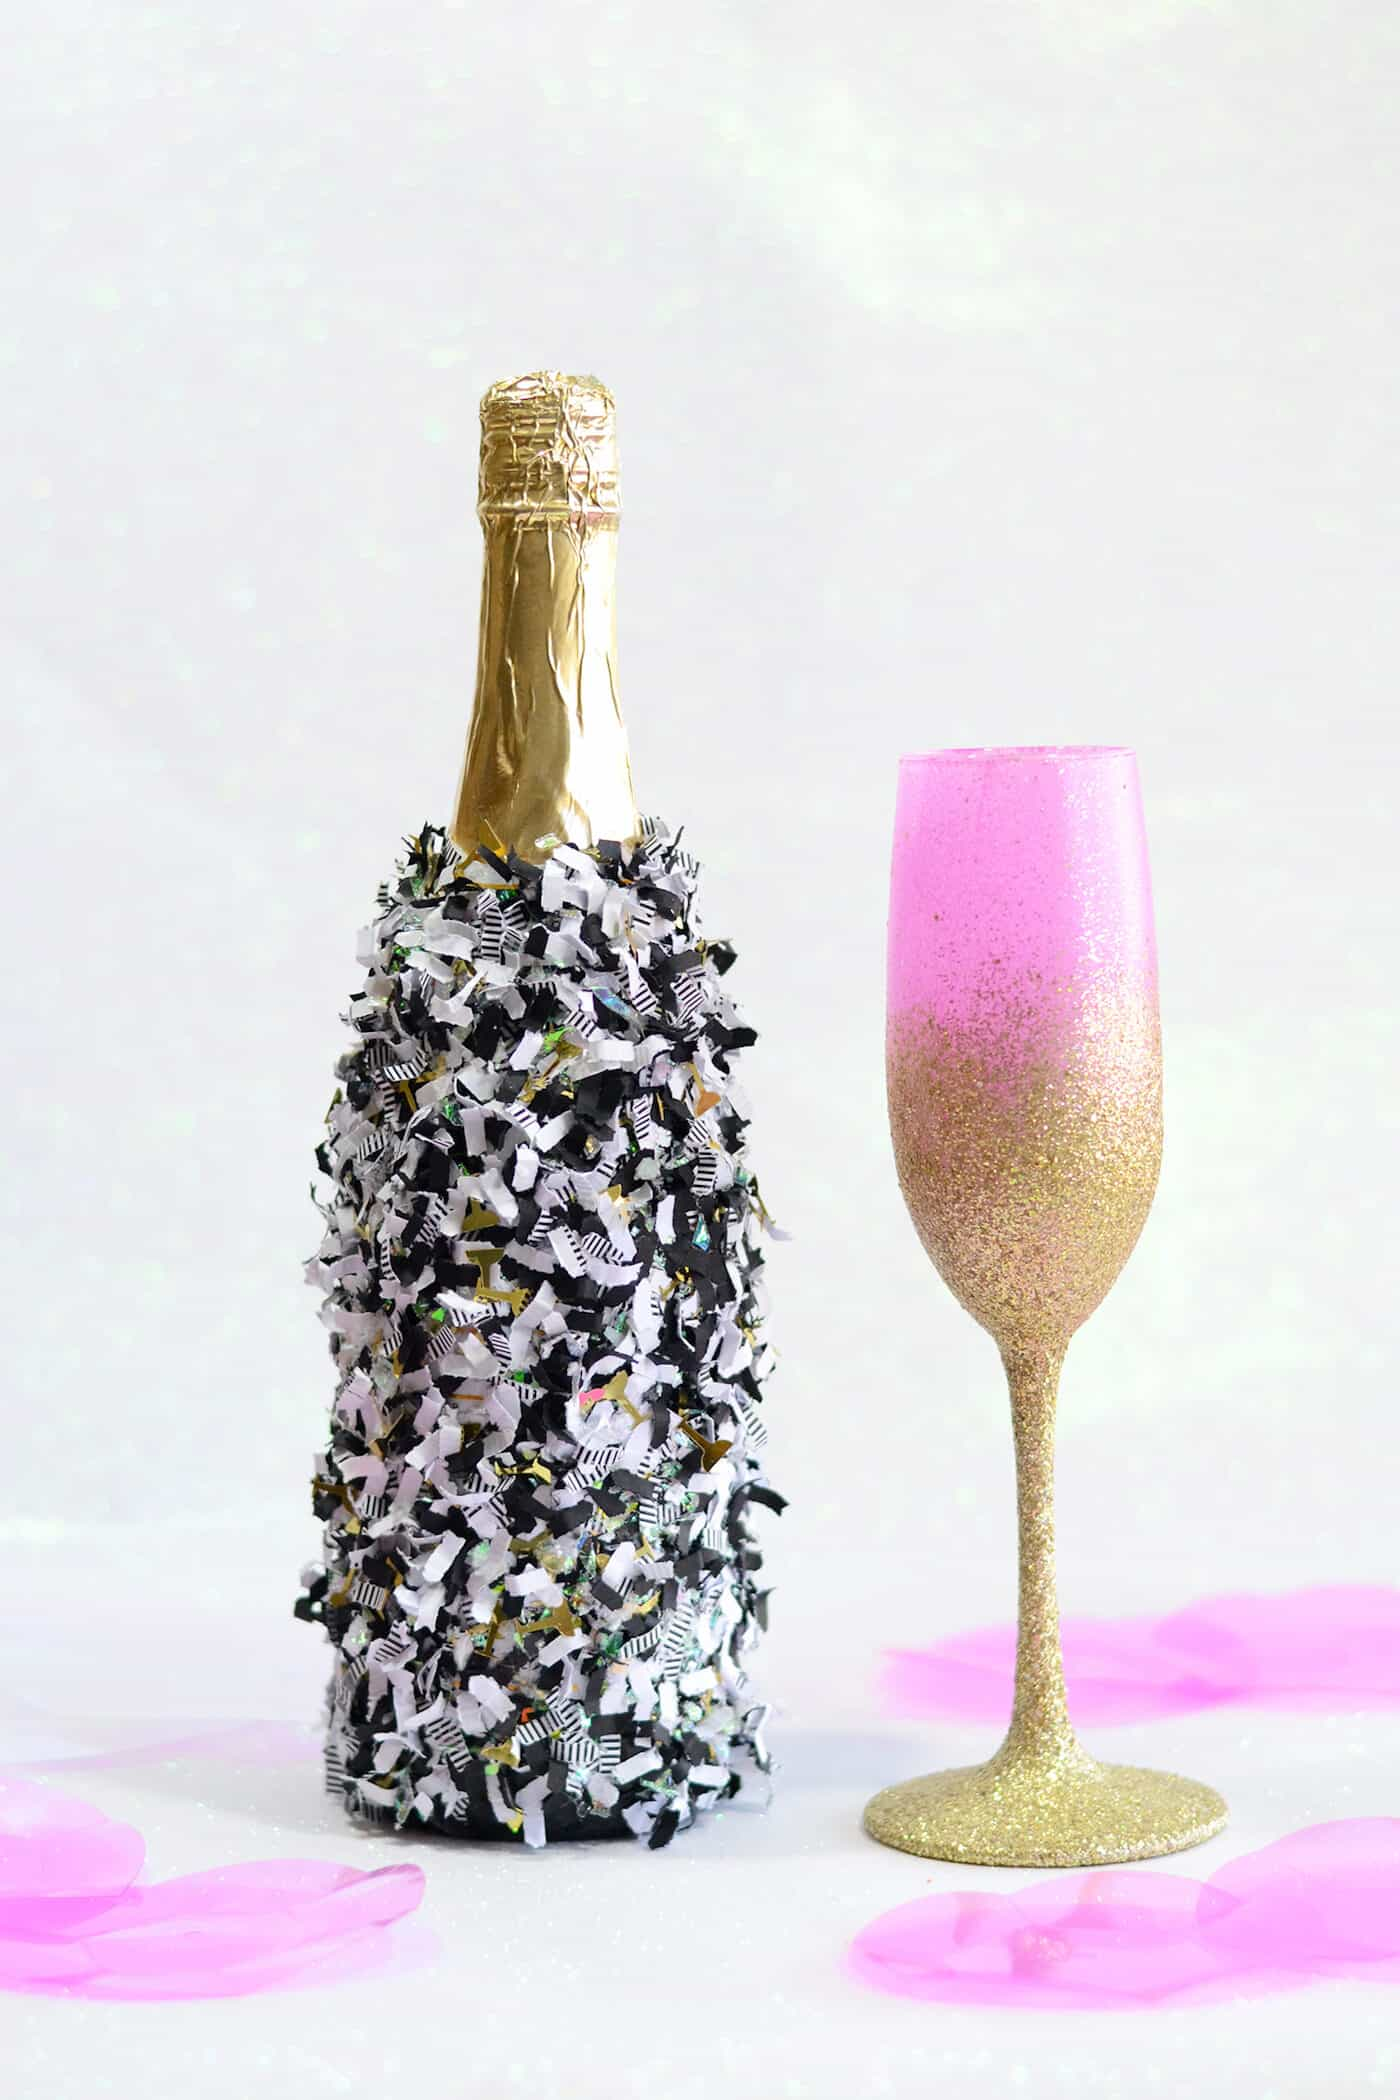 Confetti Champagne Bottle for New Years